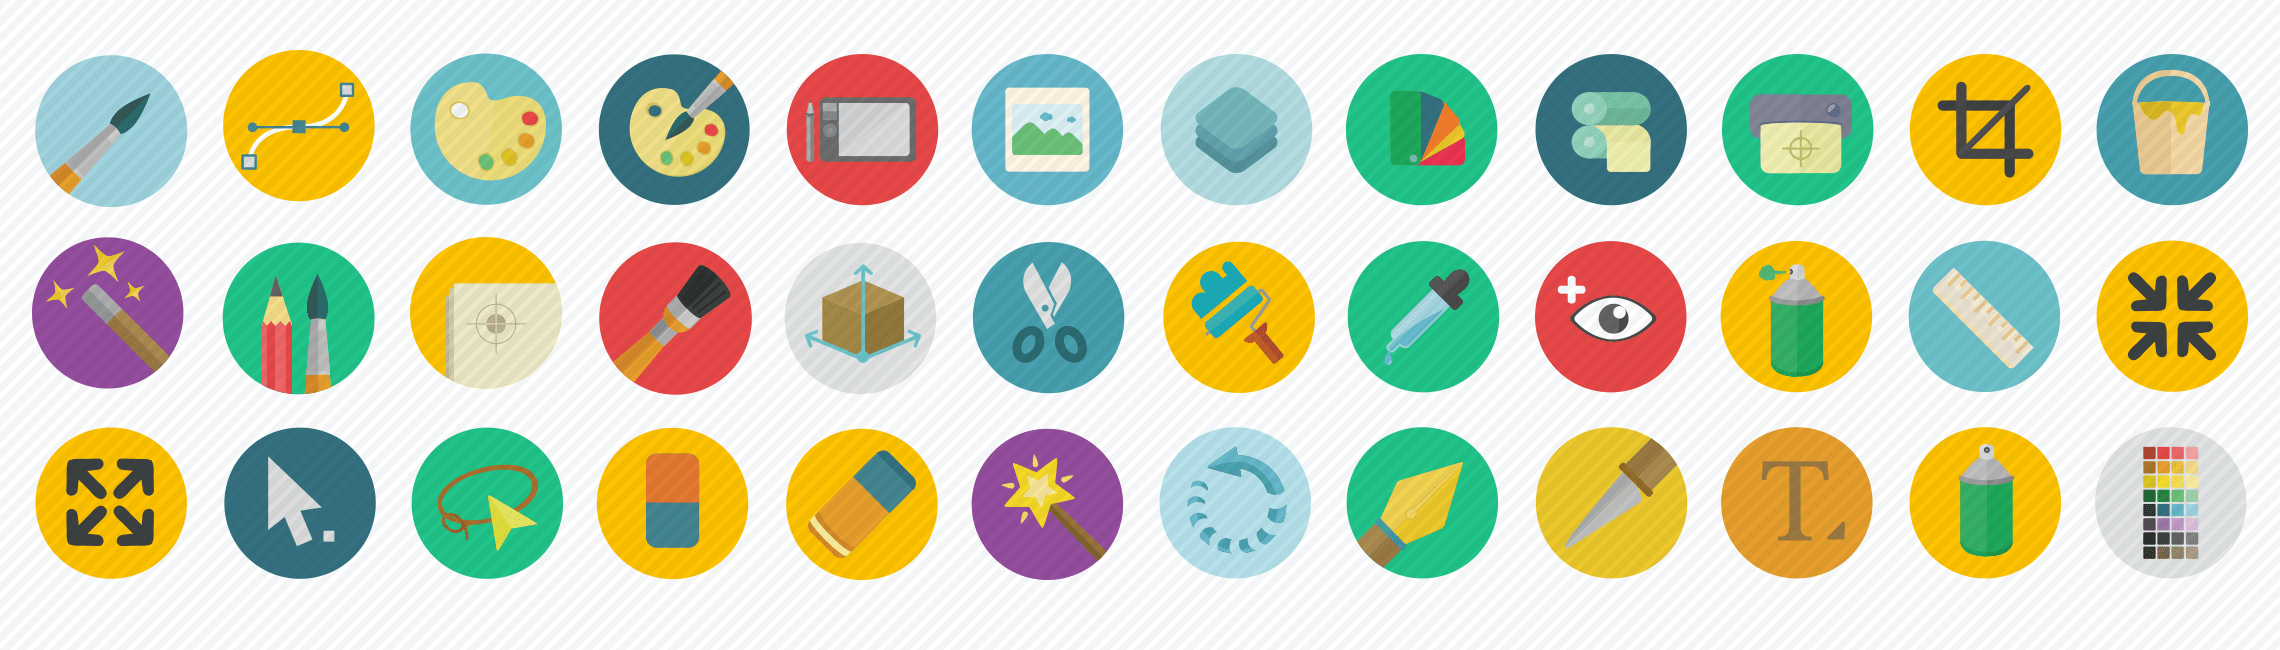 graphic design flat icons set